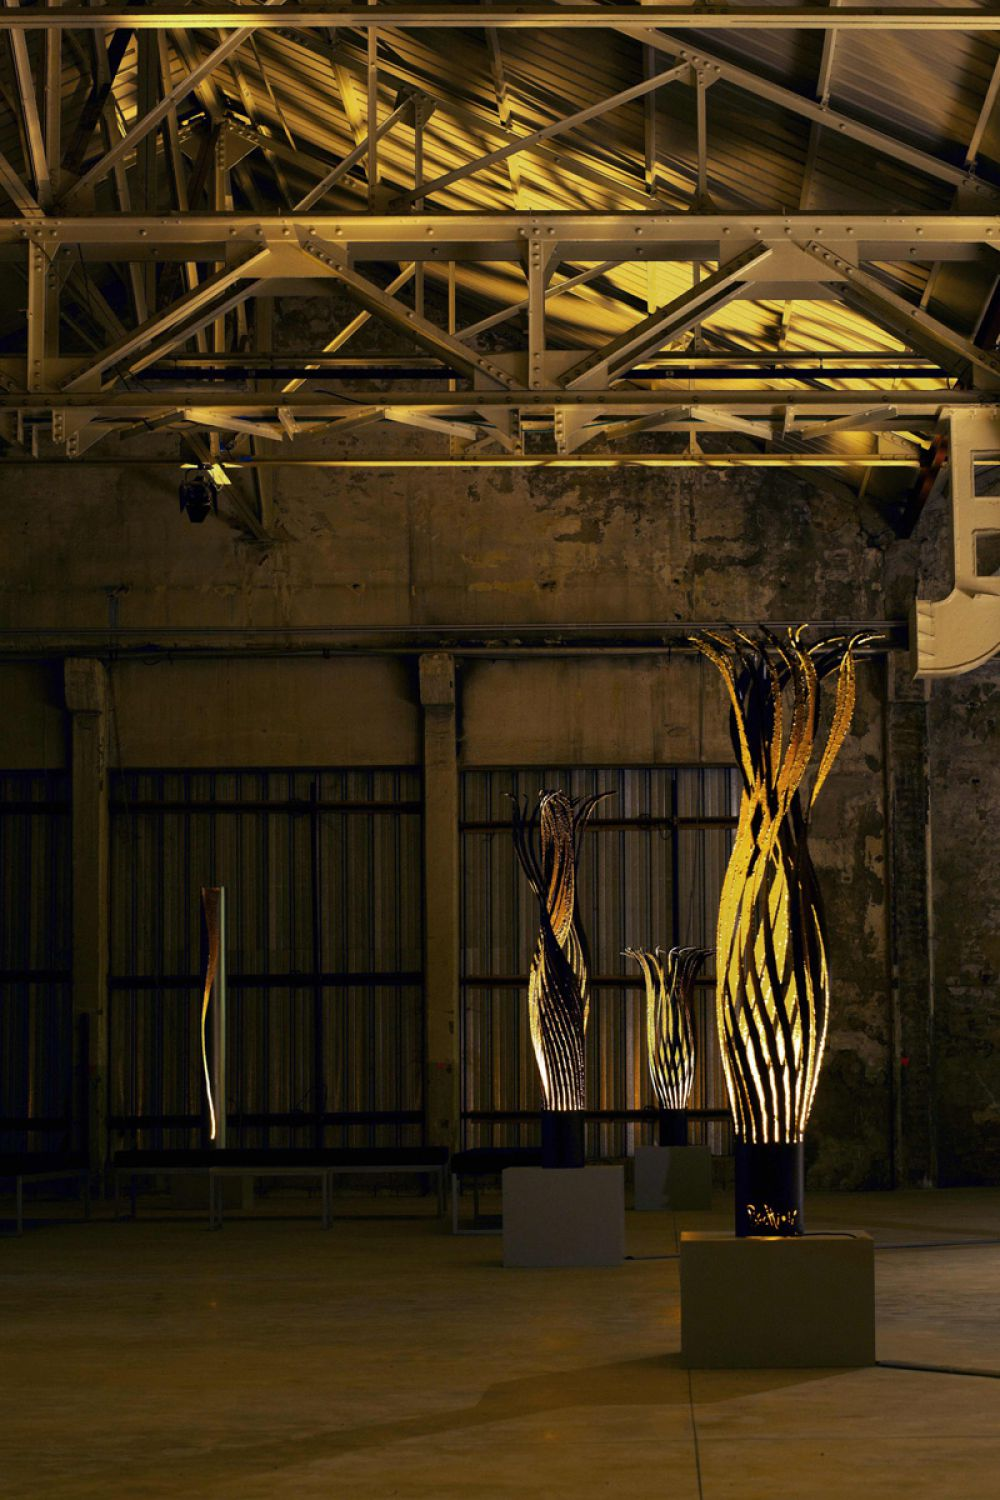 Installation at HANGAR BICOCCA - Milan